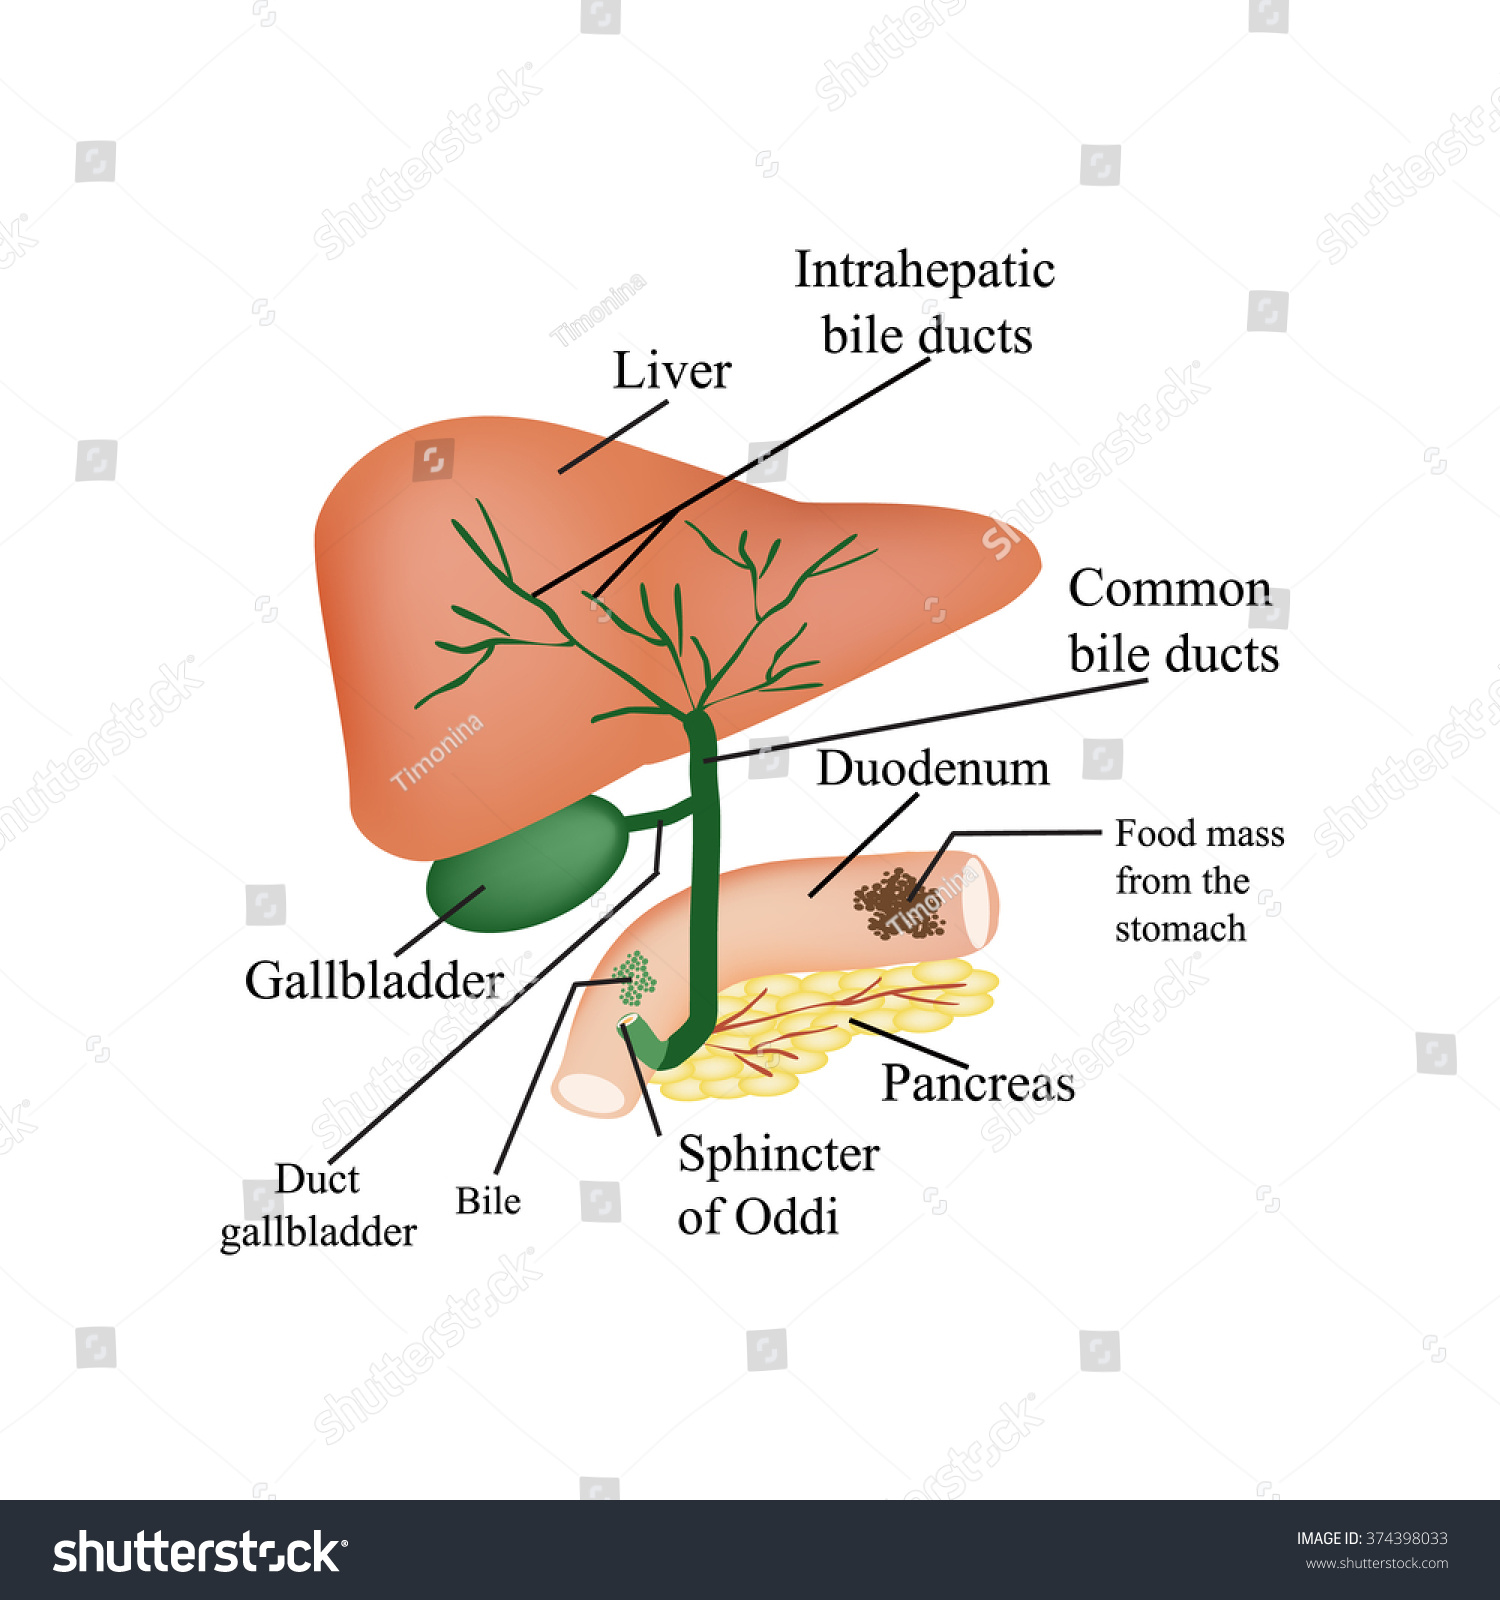 Anatomical Structure Liver Gallbladder Bile Ducts Stock Illustration ...